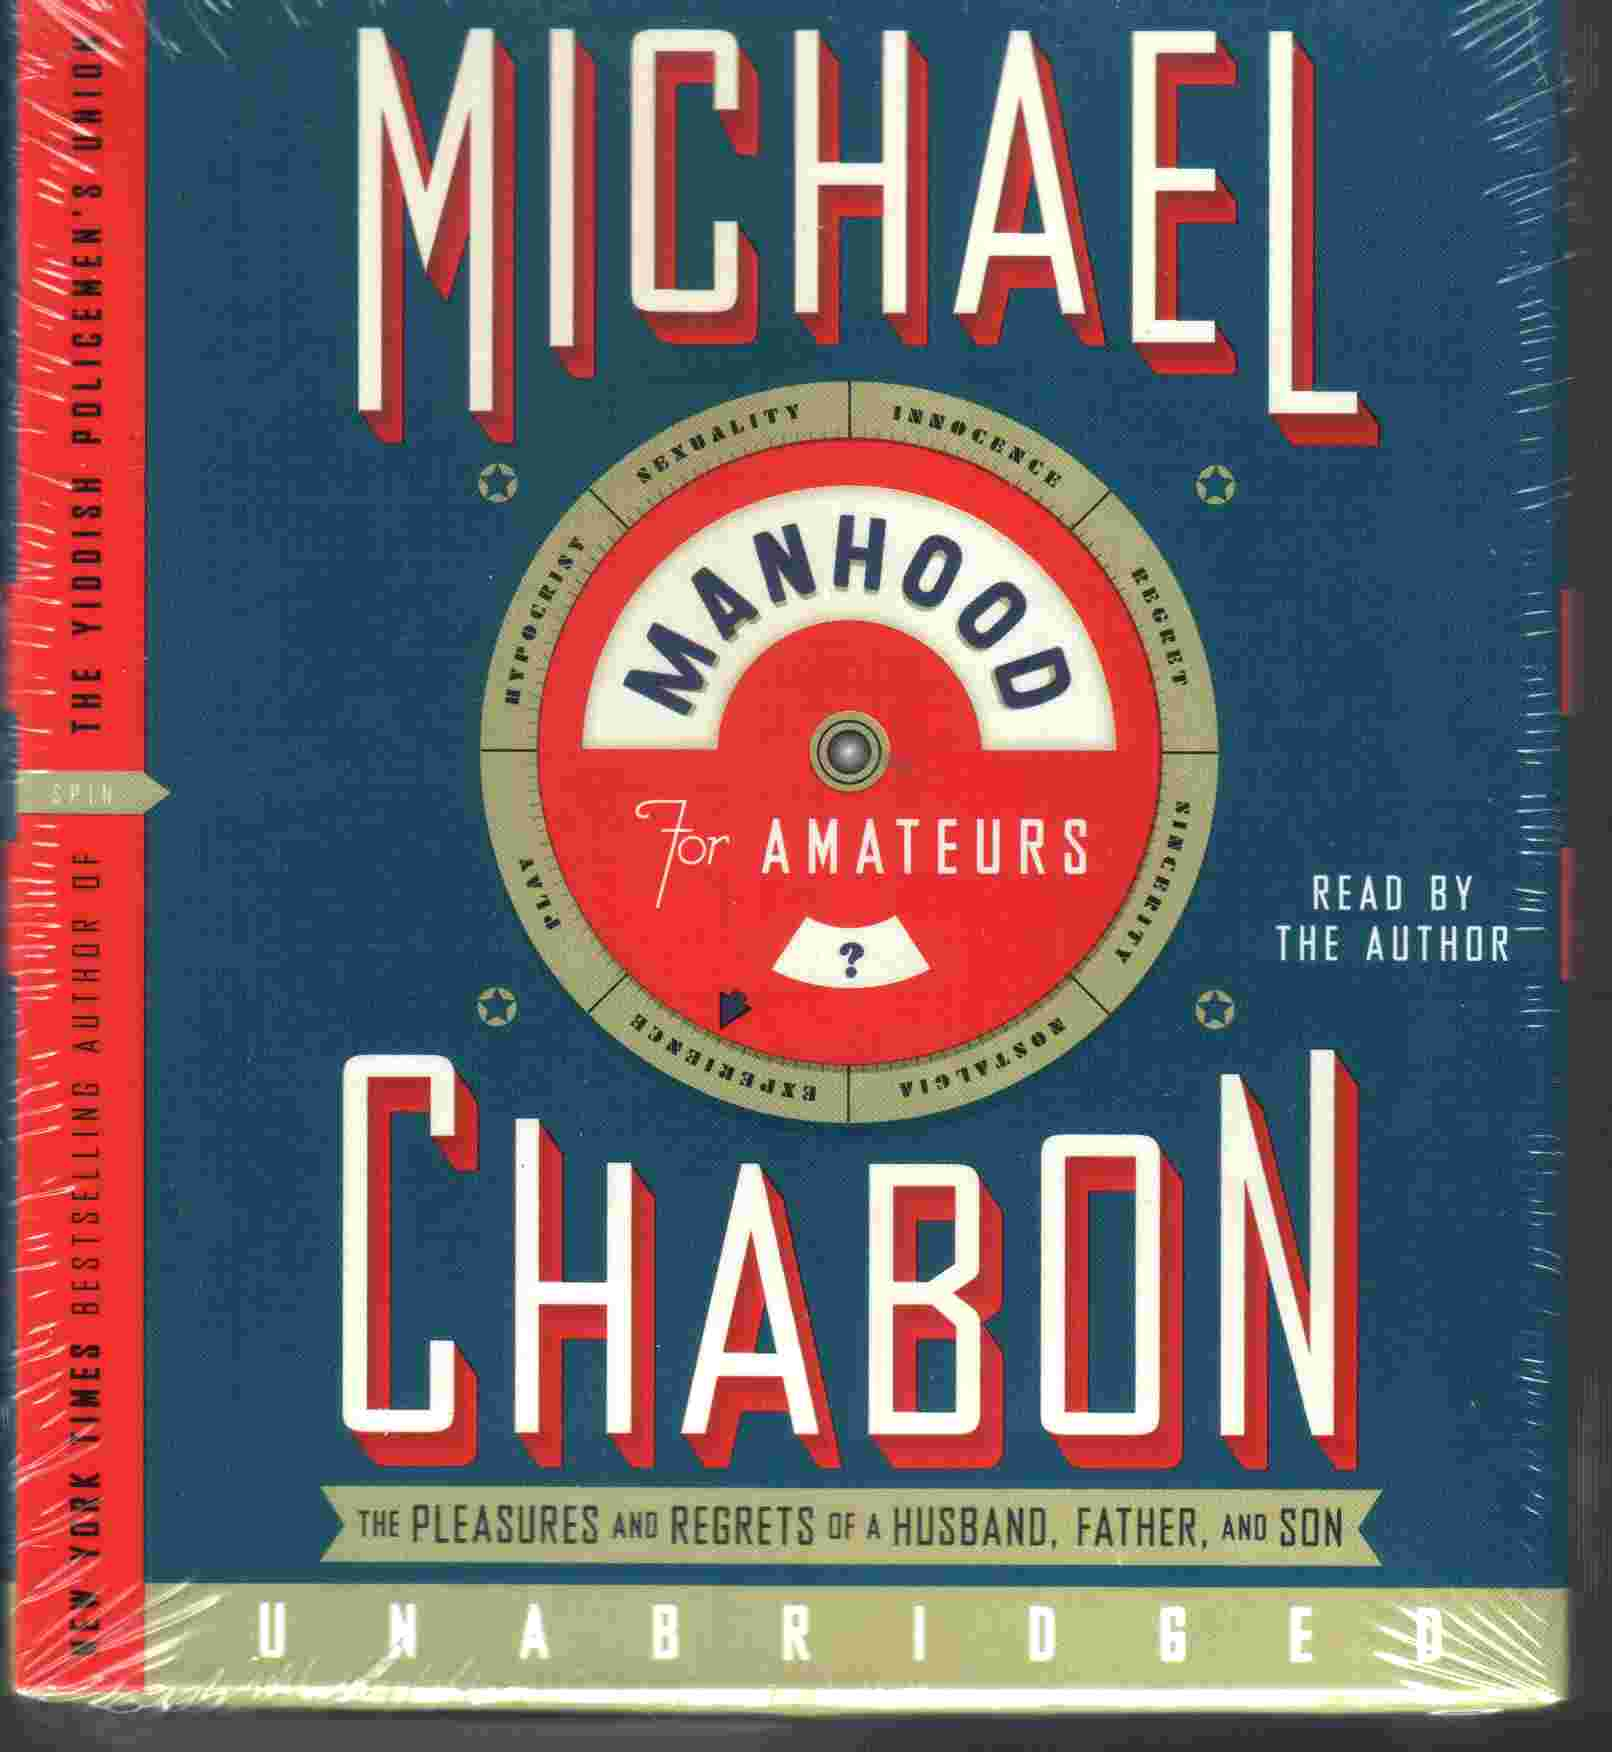 MANHOOD FOR AMATEURS by Michael Chabon